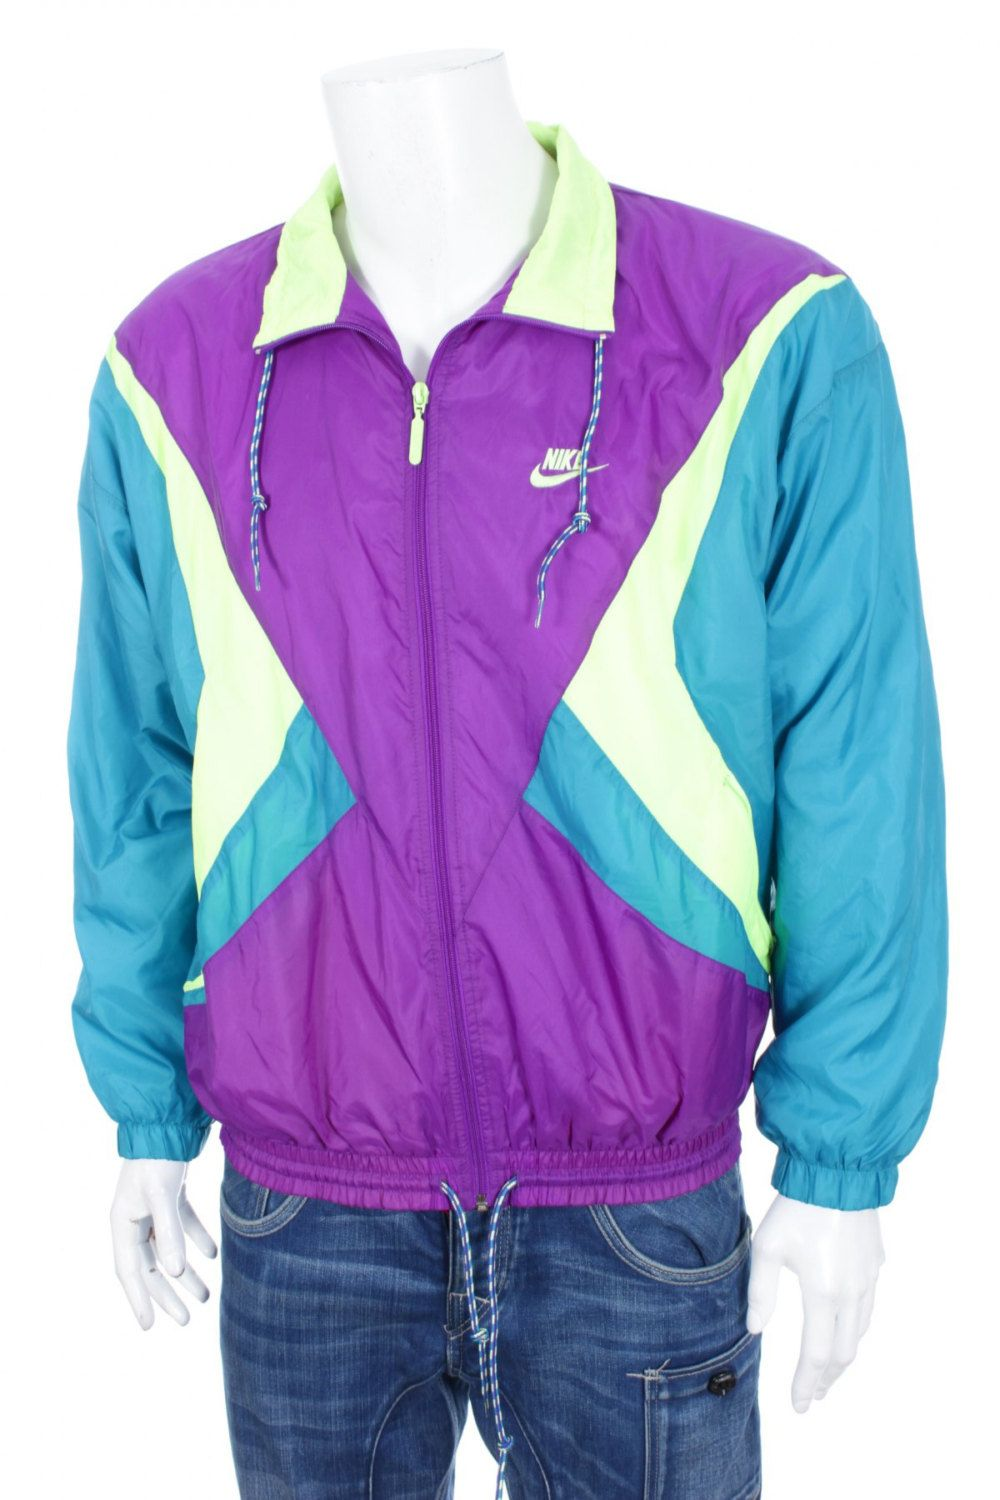 6e185afbff Rare vintage gray tag Neon Nike Tracksuit Top windbreaker Color Block jacket  Purple Blue Lime M by VapeoVintage on Etsy